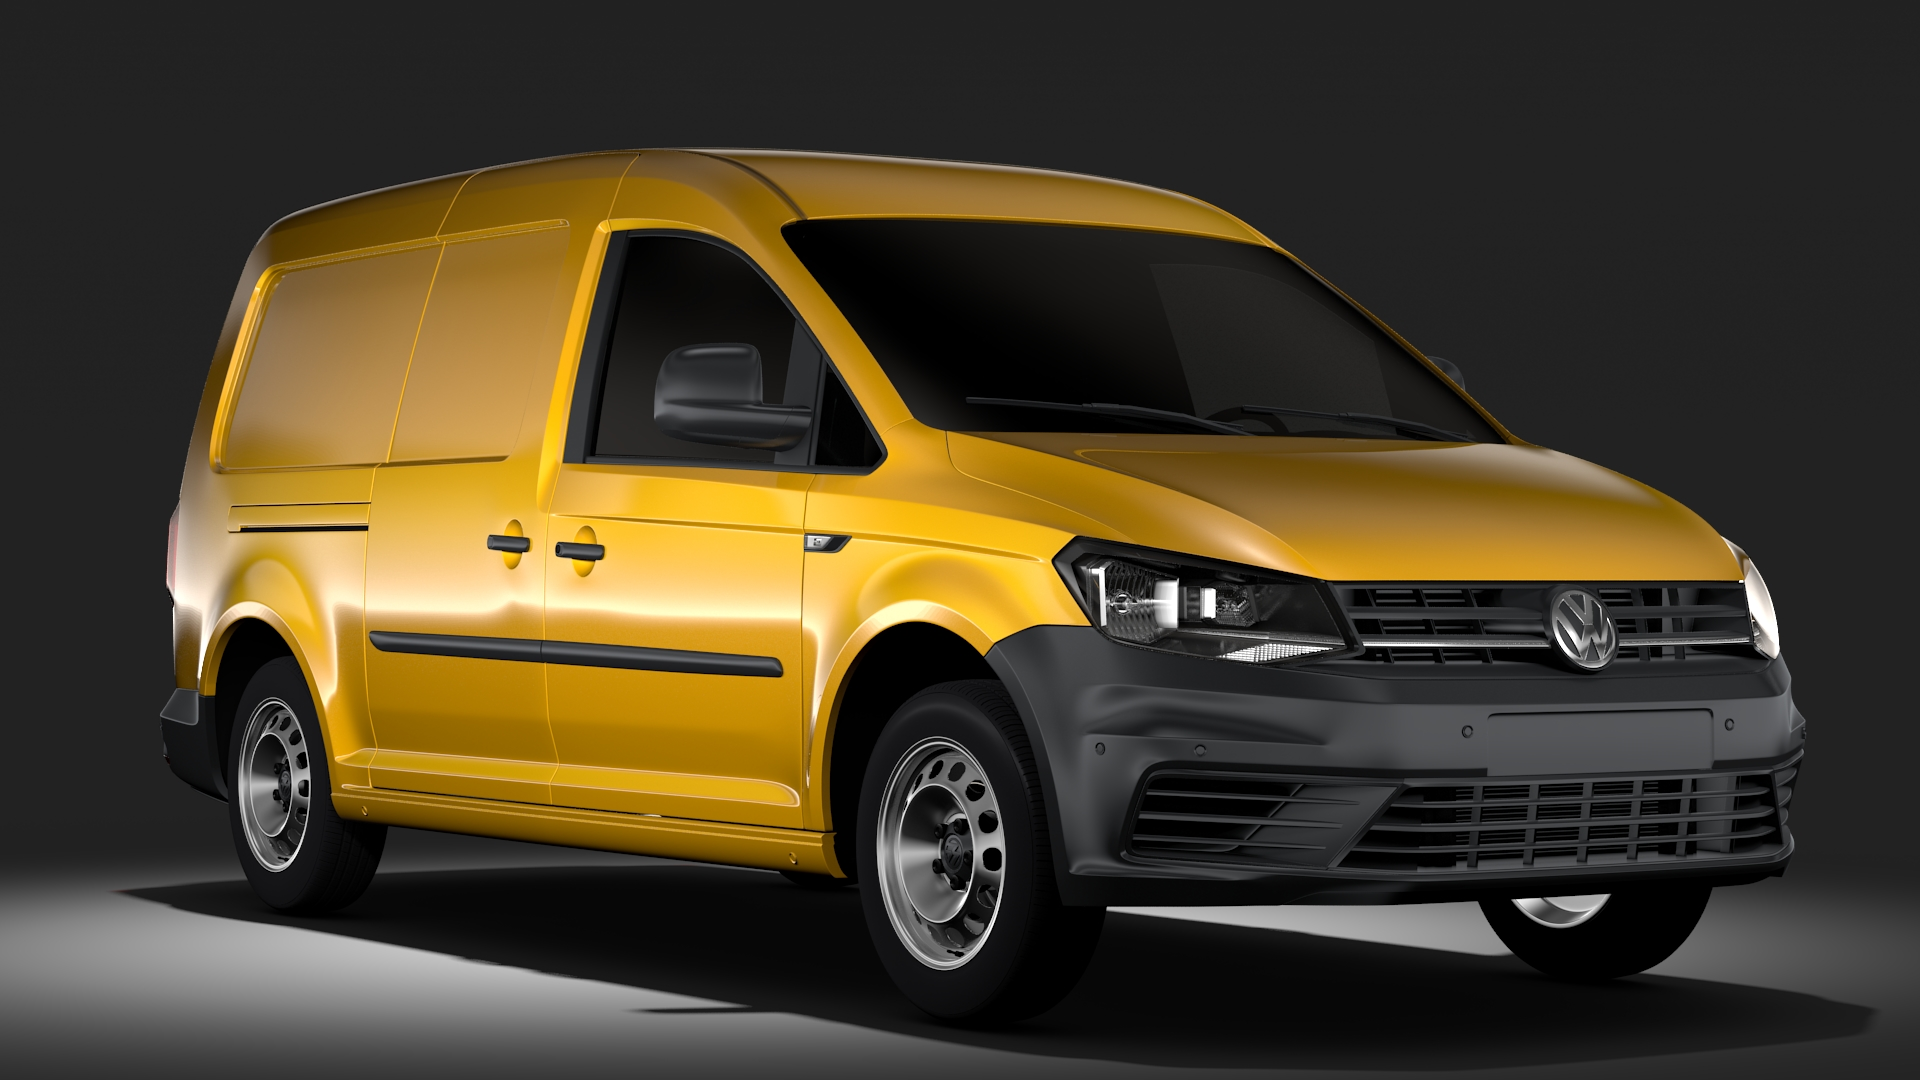 volkswagen caddy panel van l2 2017 3d model buy volkswagen caddy panel van l2 2017 3d model. Black Bedroom Furniture Sets. Home Design Ideas